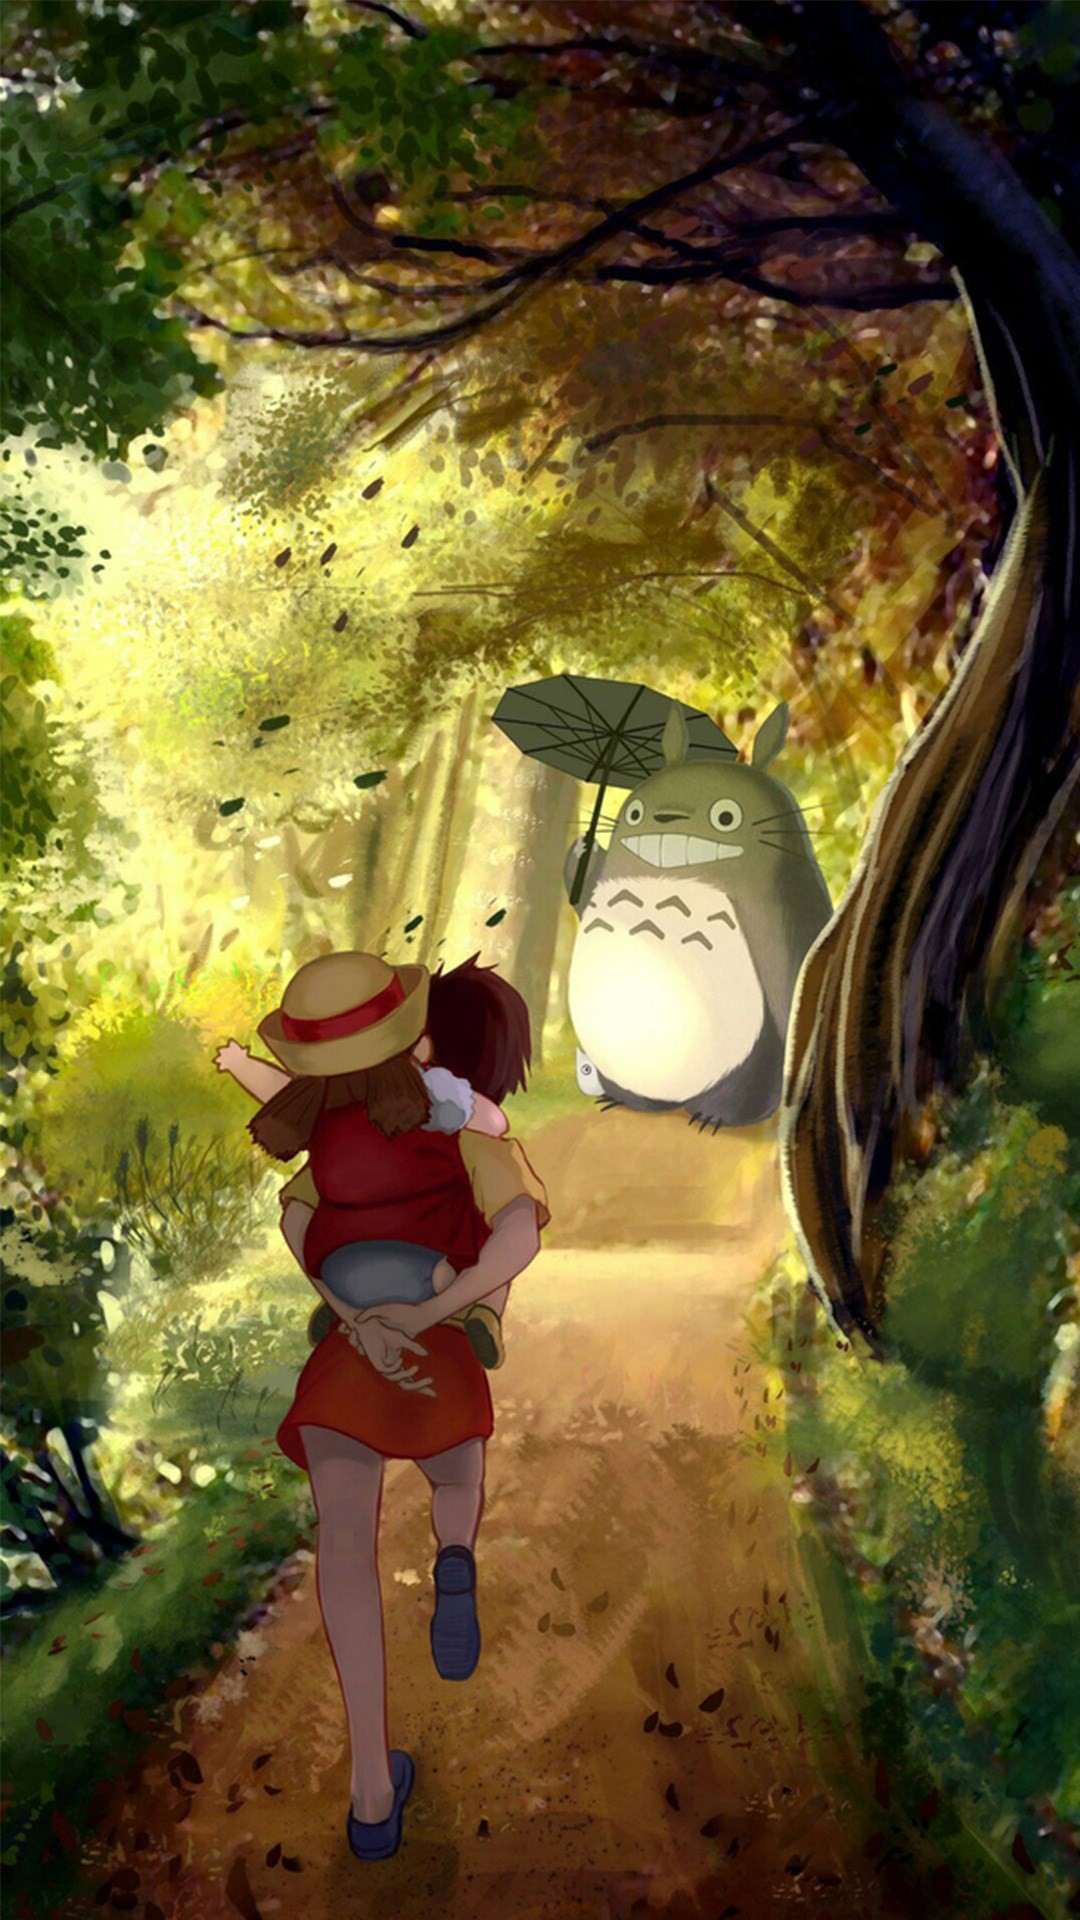 1080x1920 ... Grove Totoro With Umbrella Waiting Kids Road Anime Cartoon Cute Film  iPhone 8 wallpaper.